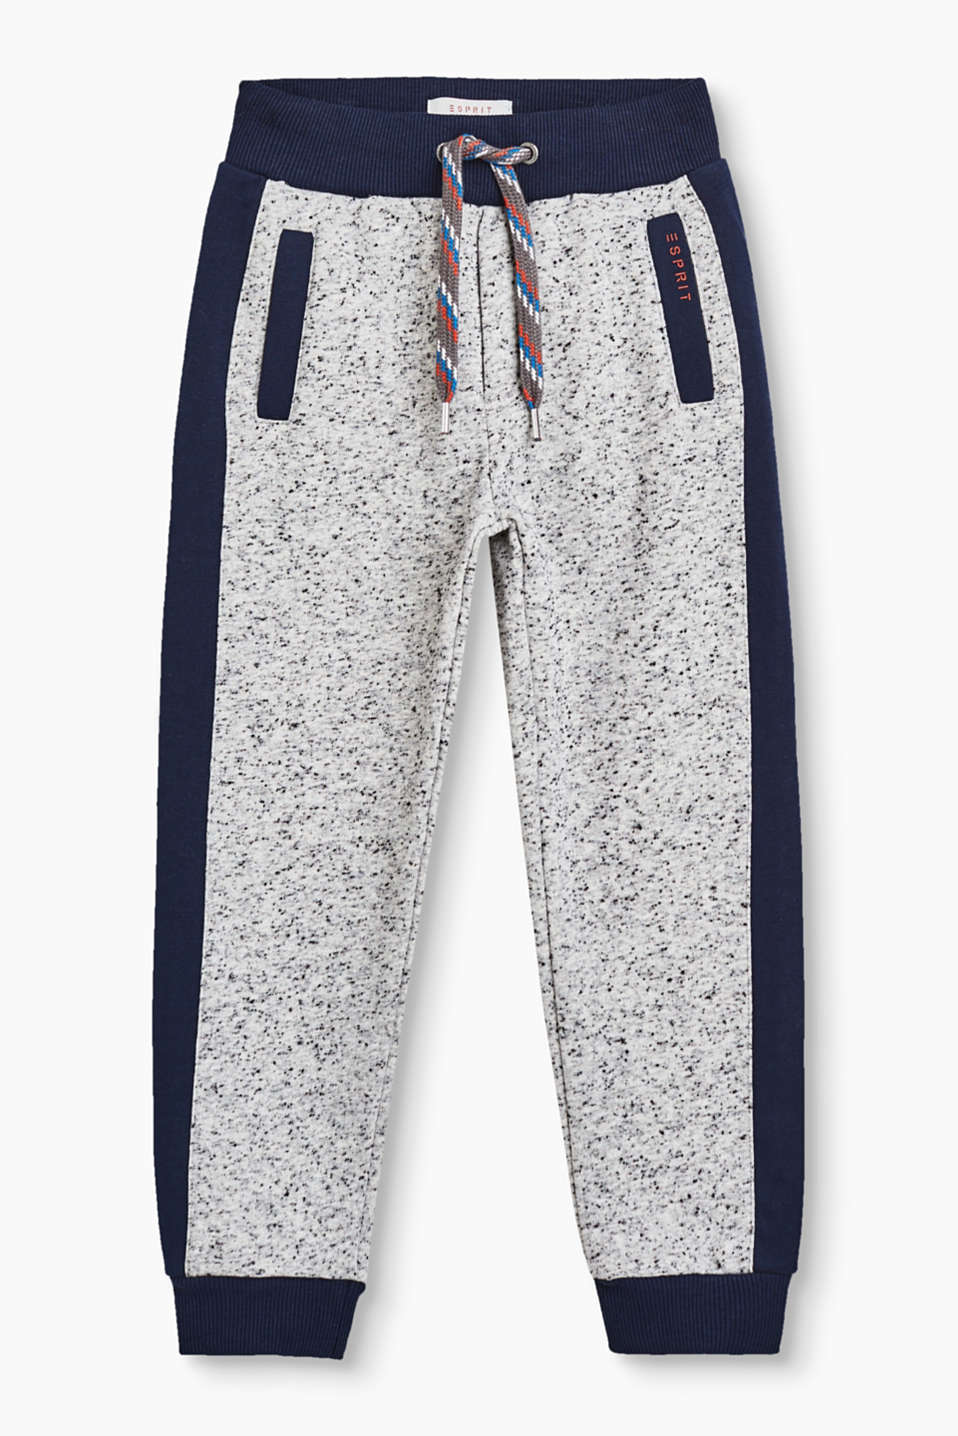 Comfortable, soft tracksuit bottoms with garment-washed effects and a wide, colour-contrasting drawstring tie